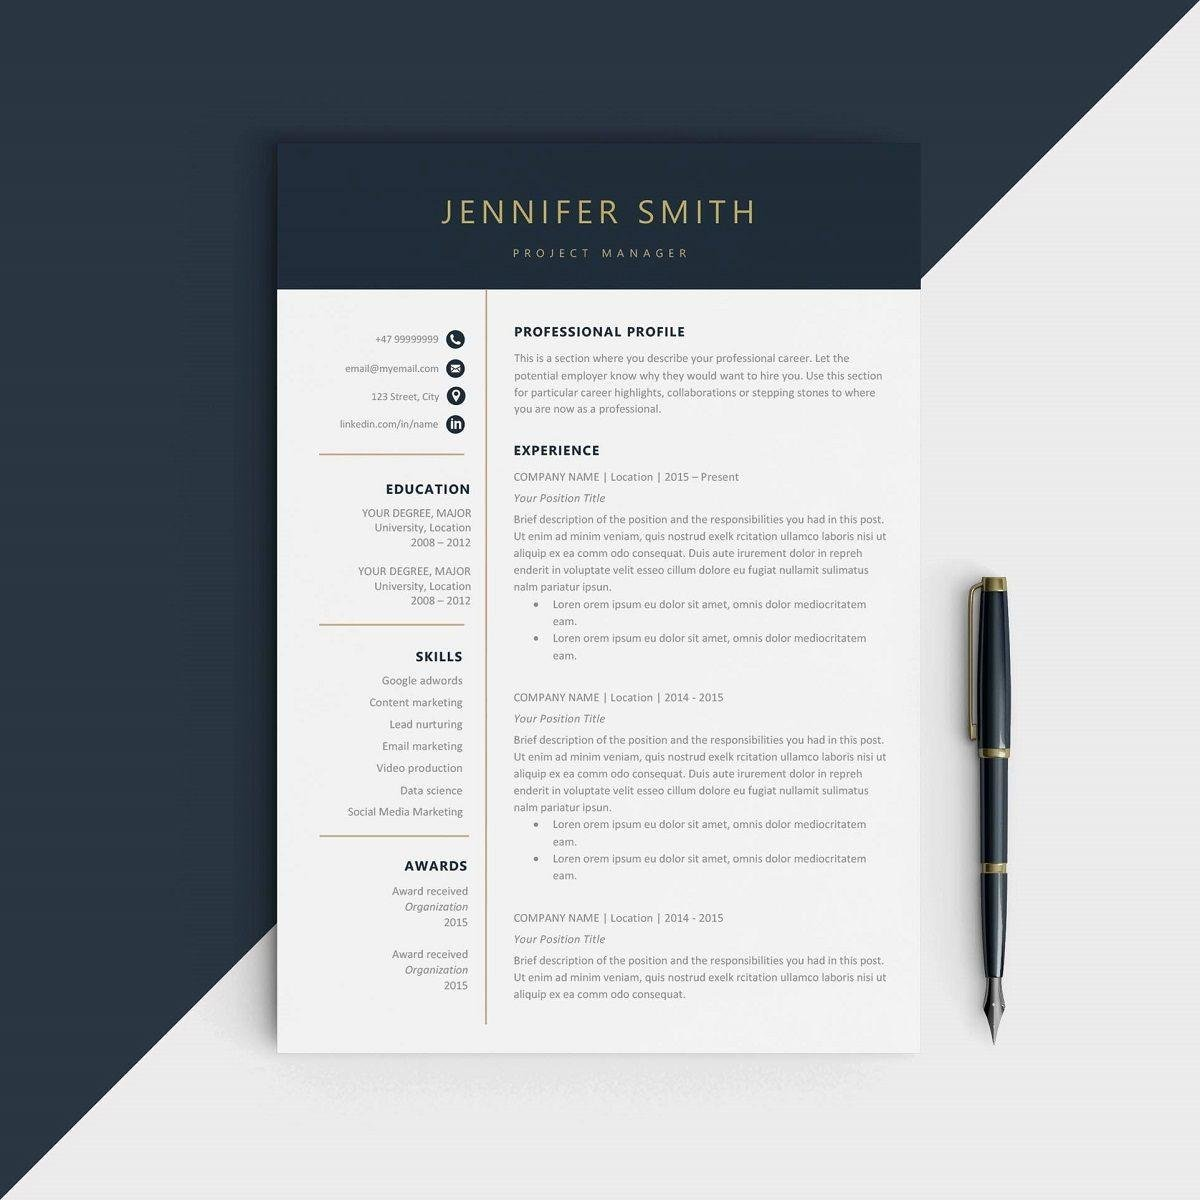 modern resume templates 18 examples a complete guide. Black Bedroom Furniture Sets. Home Design Ideas